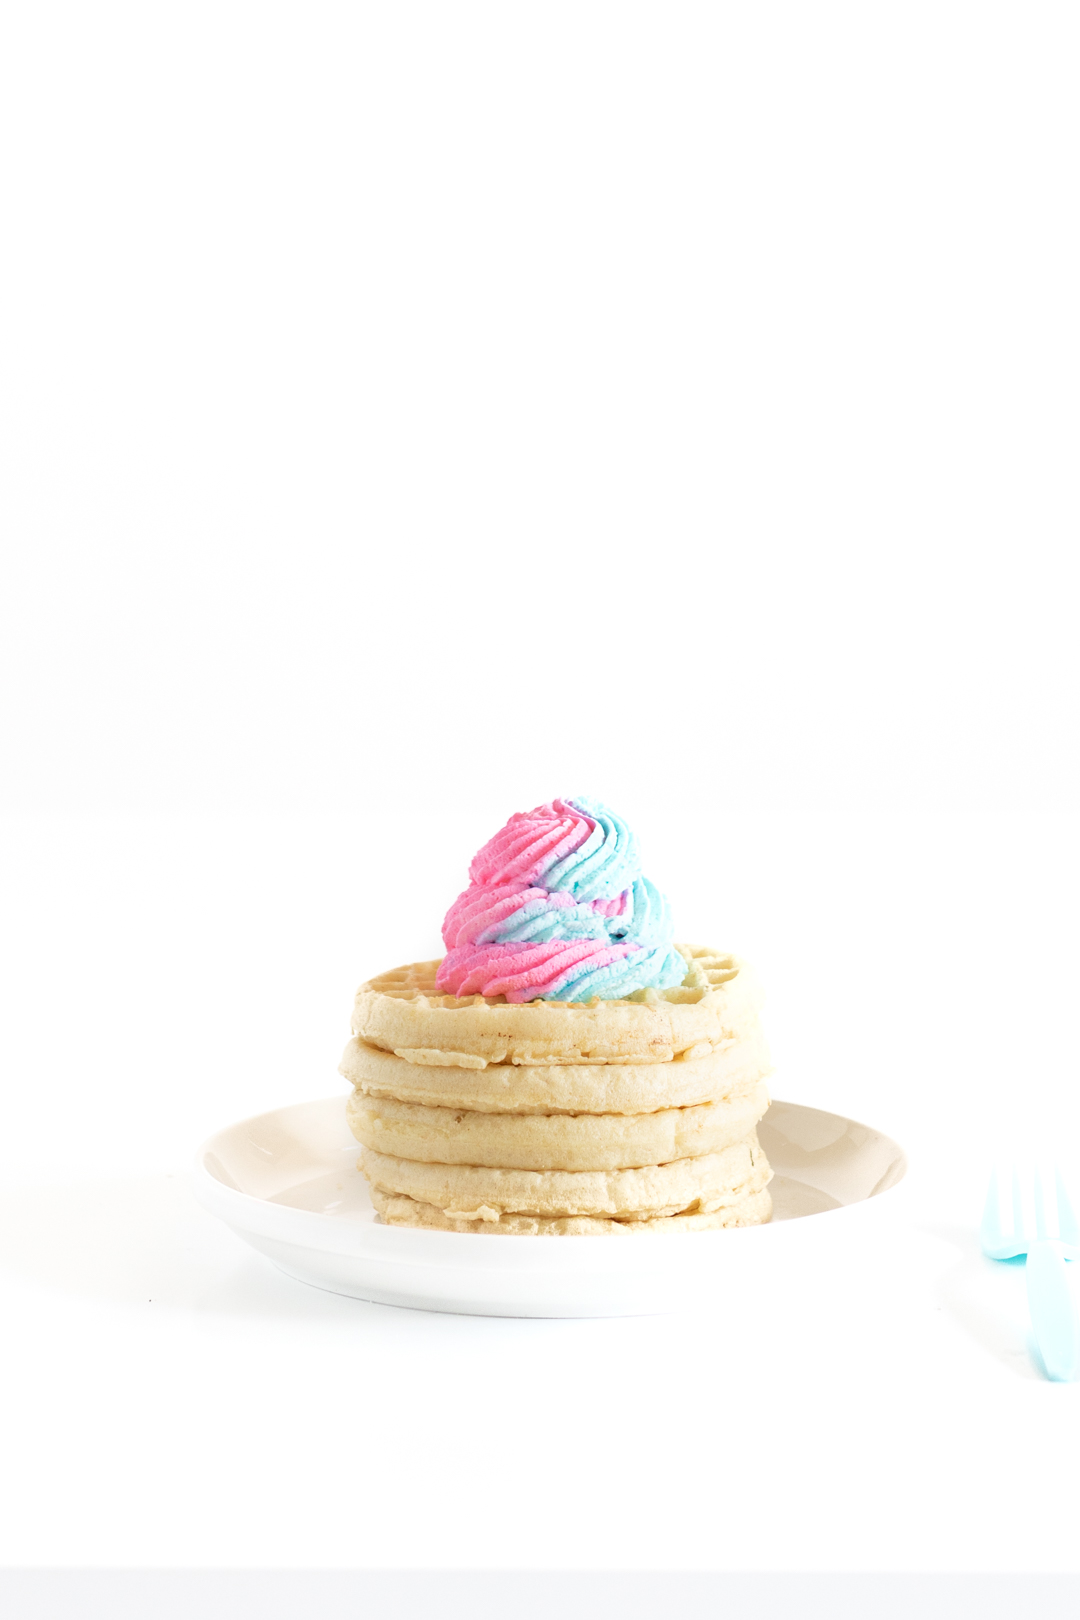 stack of waffles on a white plate with a lip topped with pink and blue swirled whipped cream